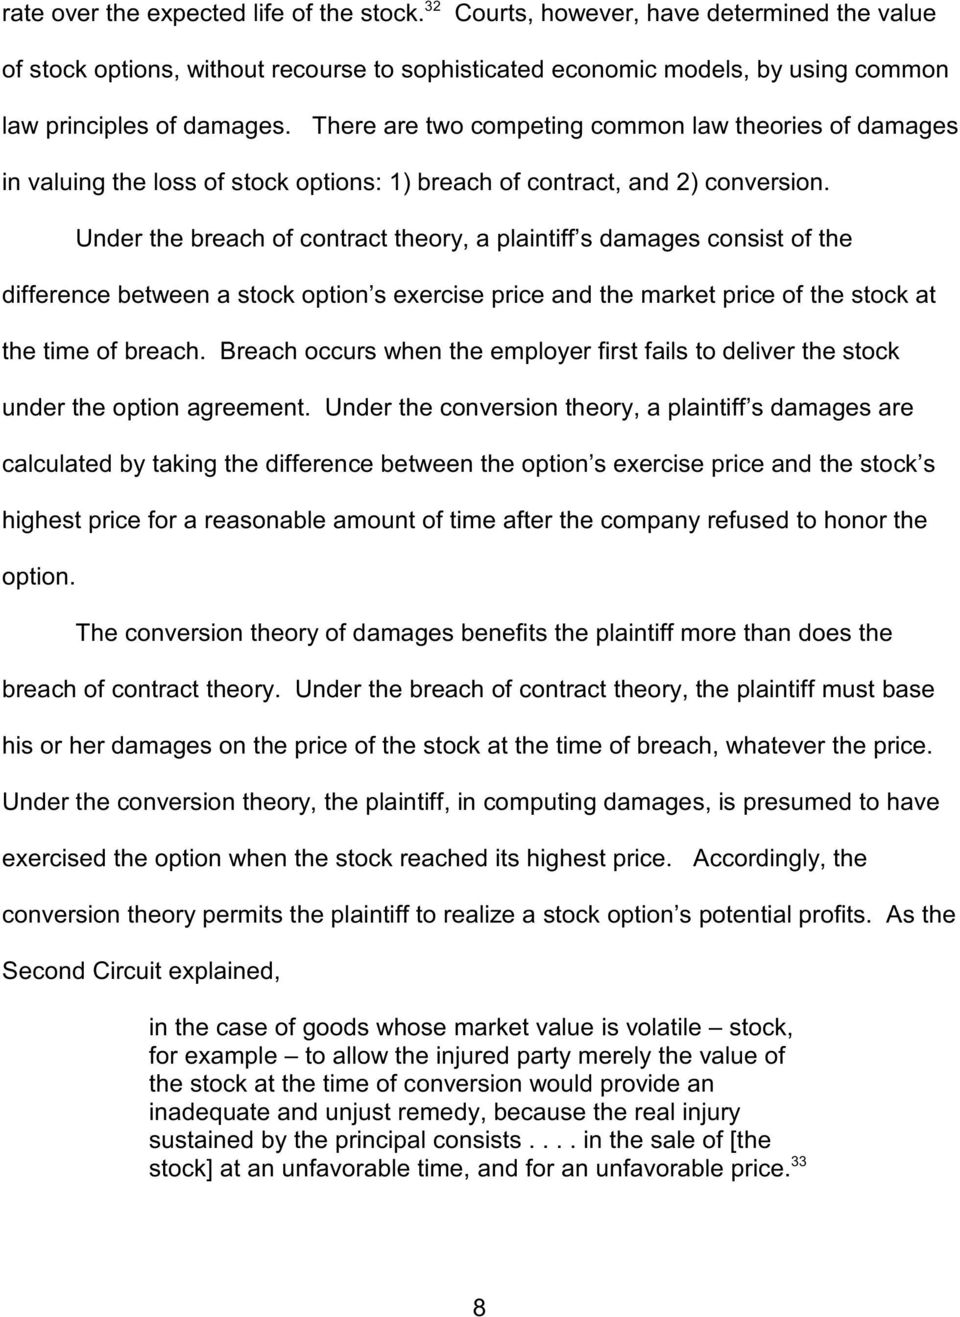 Under e breach of contract eory, a plaintiff s damages consist of e difference between a stock option s exercise price and e market price of e stock at e time of breach.